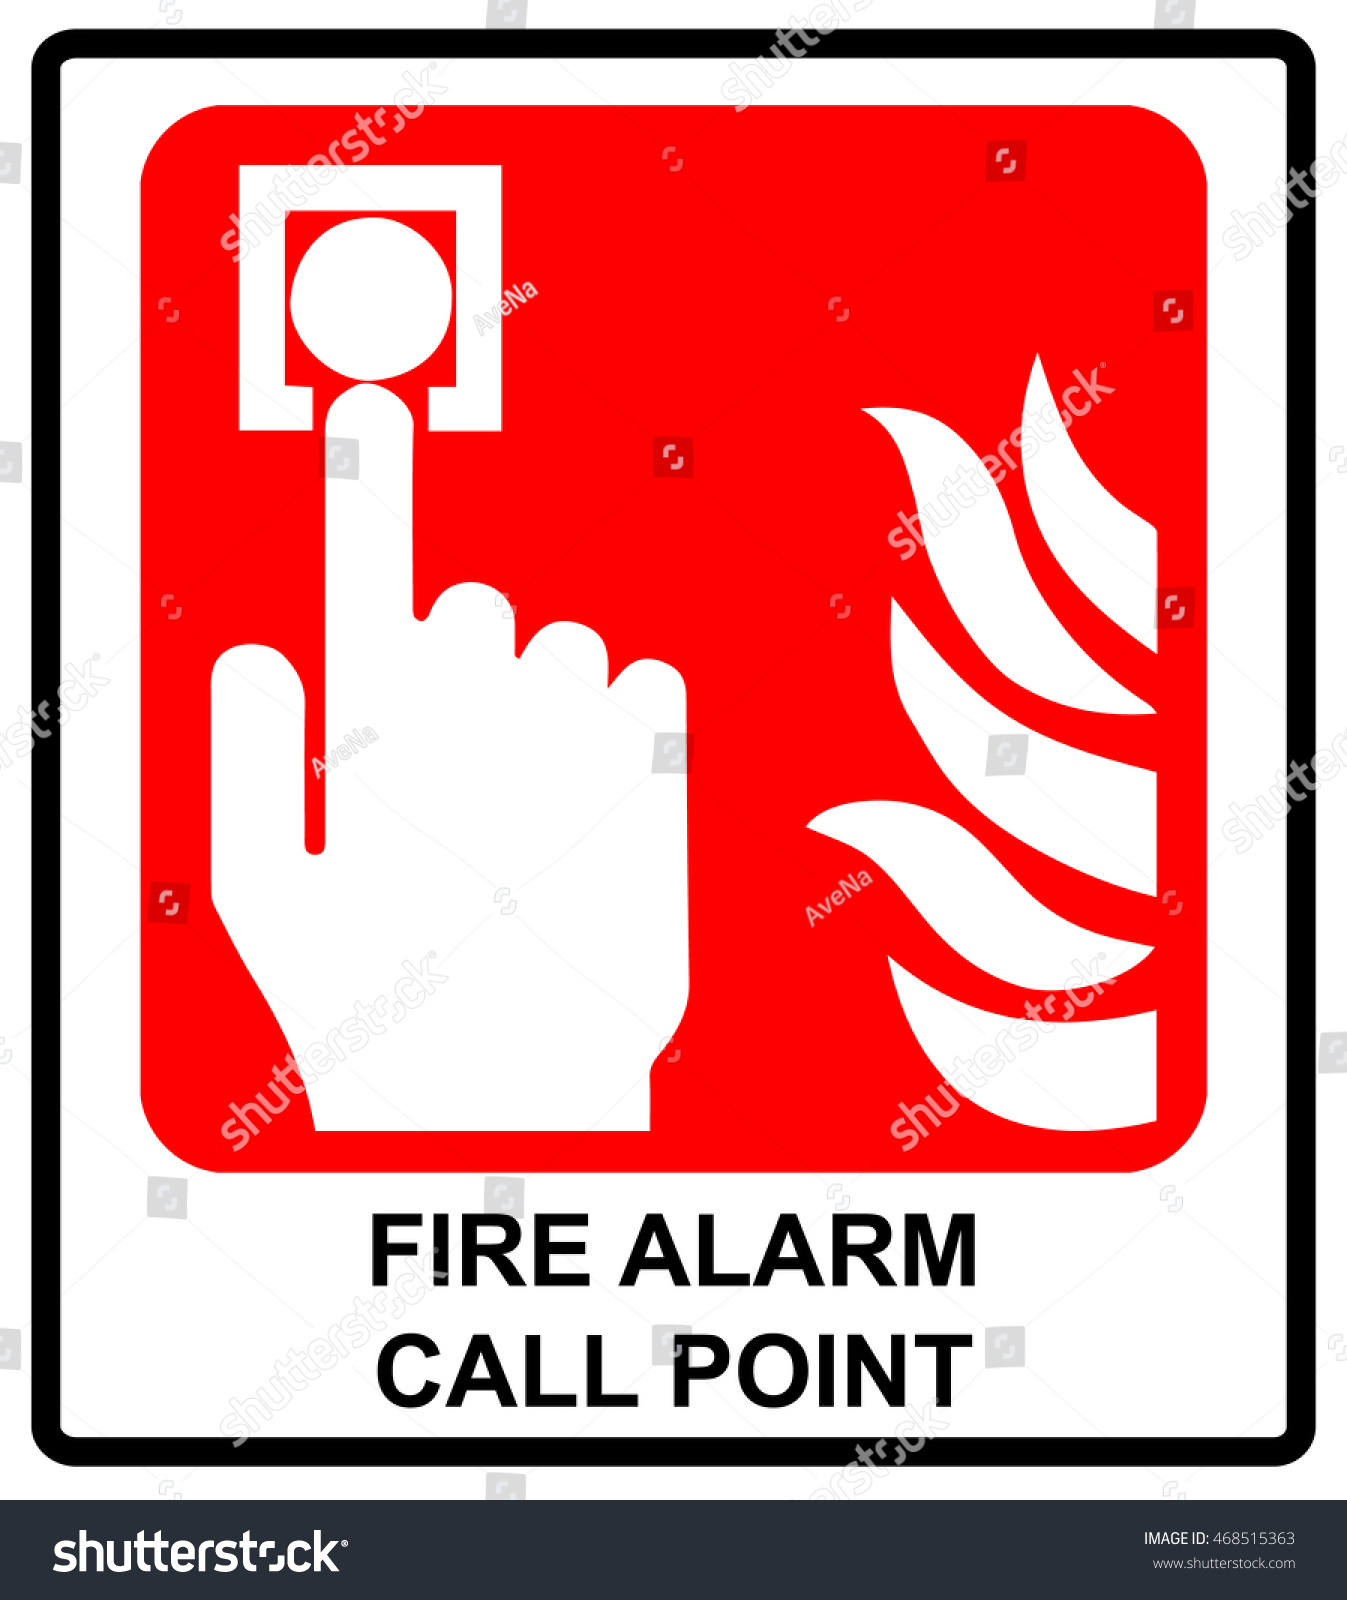 Fire alarm call point vector symbol stock vector 468515363 vector symbol for emergency sticker label for public places buycottarizona Images